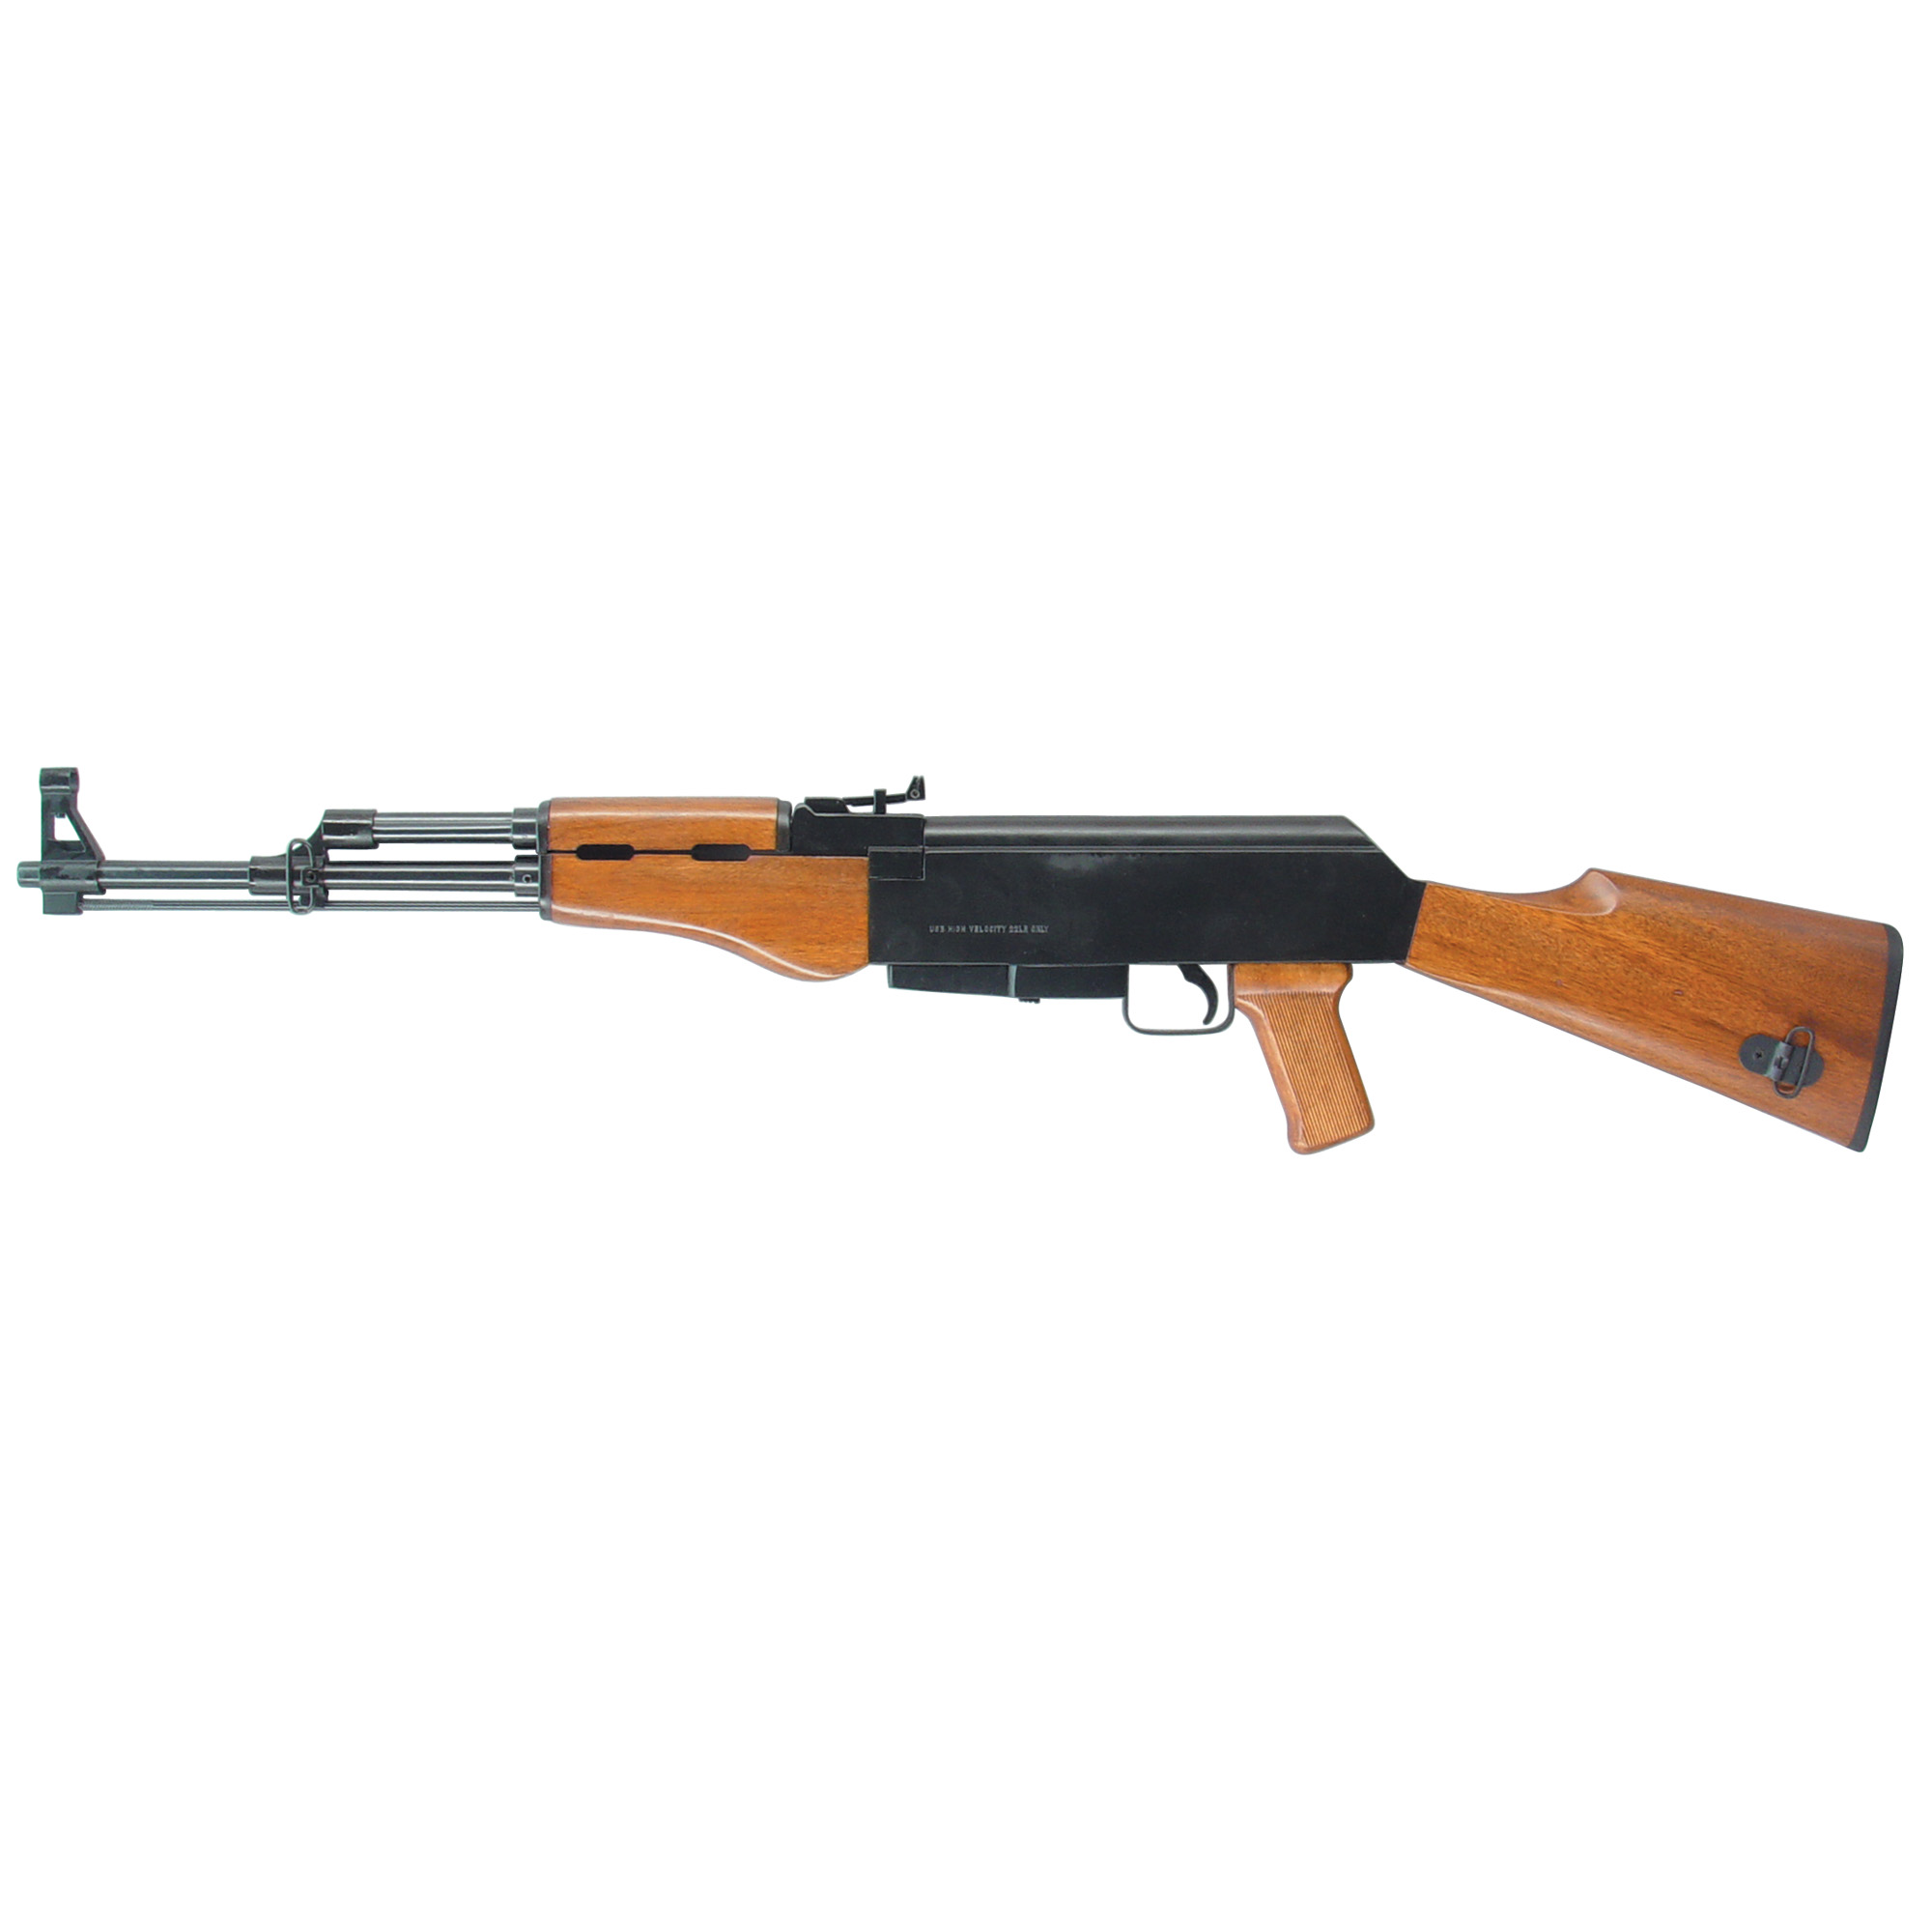 """The MAK22 SA is a .22 Long Rifle equipped with an 18.25"""" barrel"""" blue finish"""" wood stock and pistol grip. The AK22 is outfitted with a post front sight and an open U-notch with elevation adjustments."""